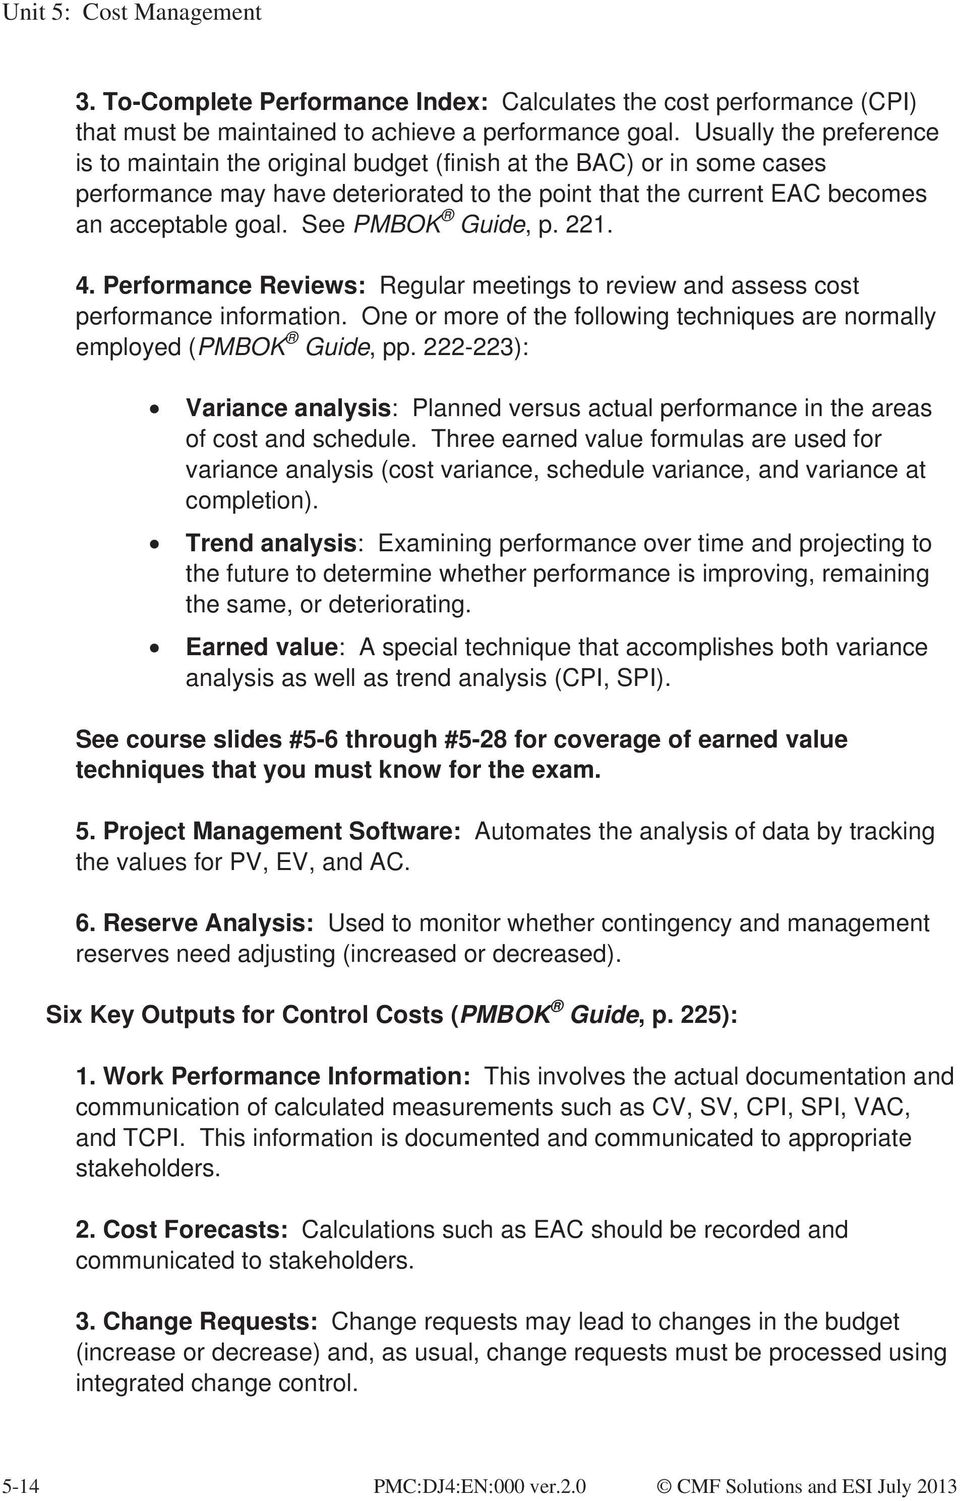 Unit 5 cost management pmbok guide chapter 7 pdf see pmbok guide p 221 4 performance reviews regular meetings to fbccfo Images